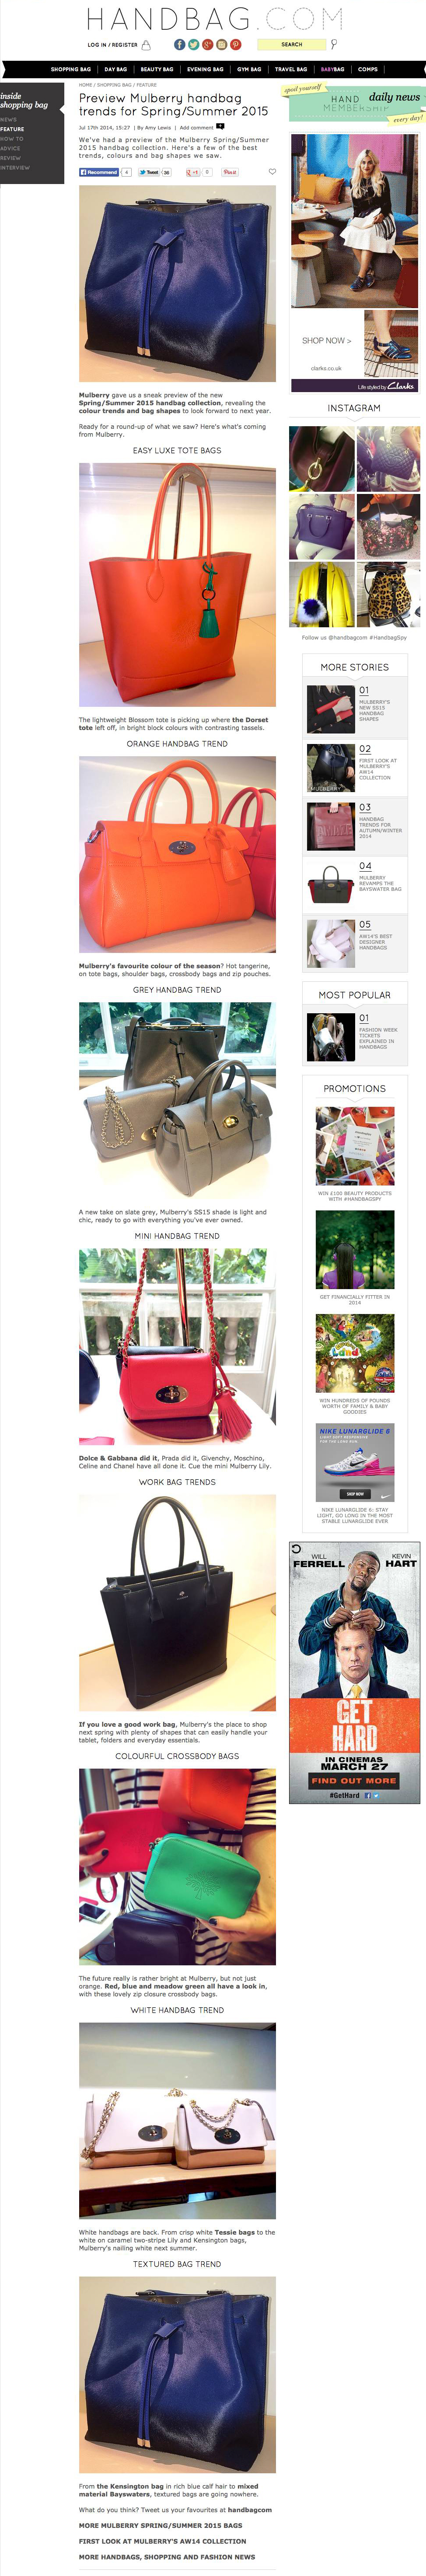 Preview_Mulberry_handbag_trends_for_Spring_Summer_2015_-_Shopping_Bag_Feature_-_handbag.com_-_2015-03-17_22.48.46.png